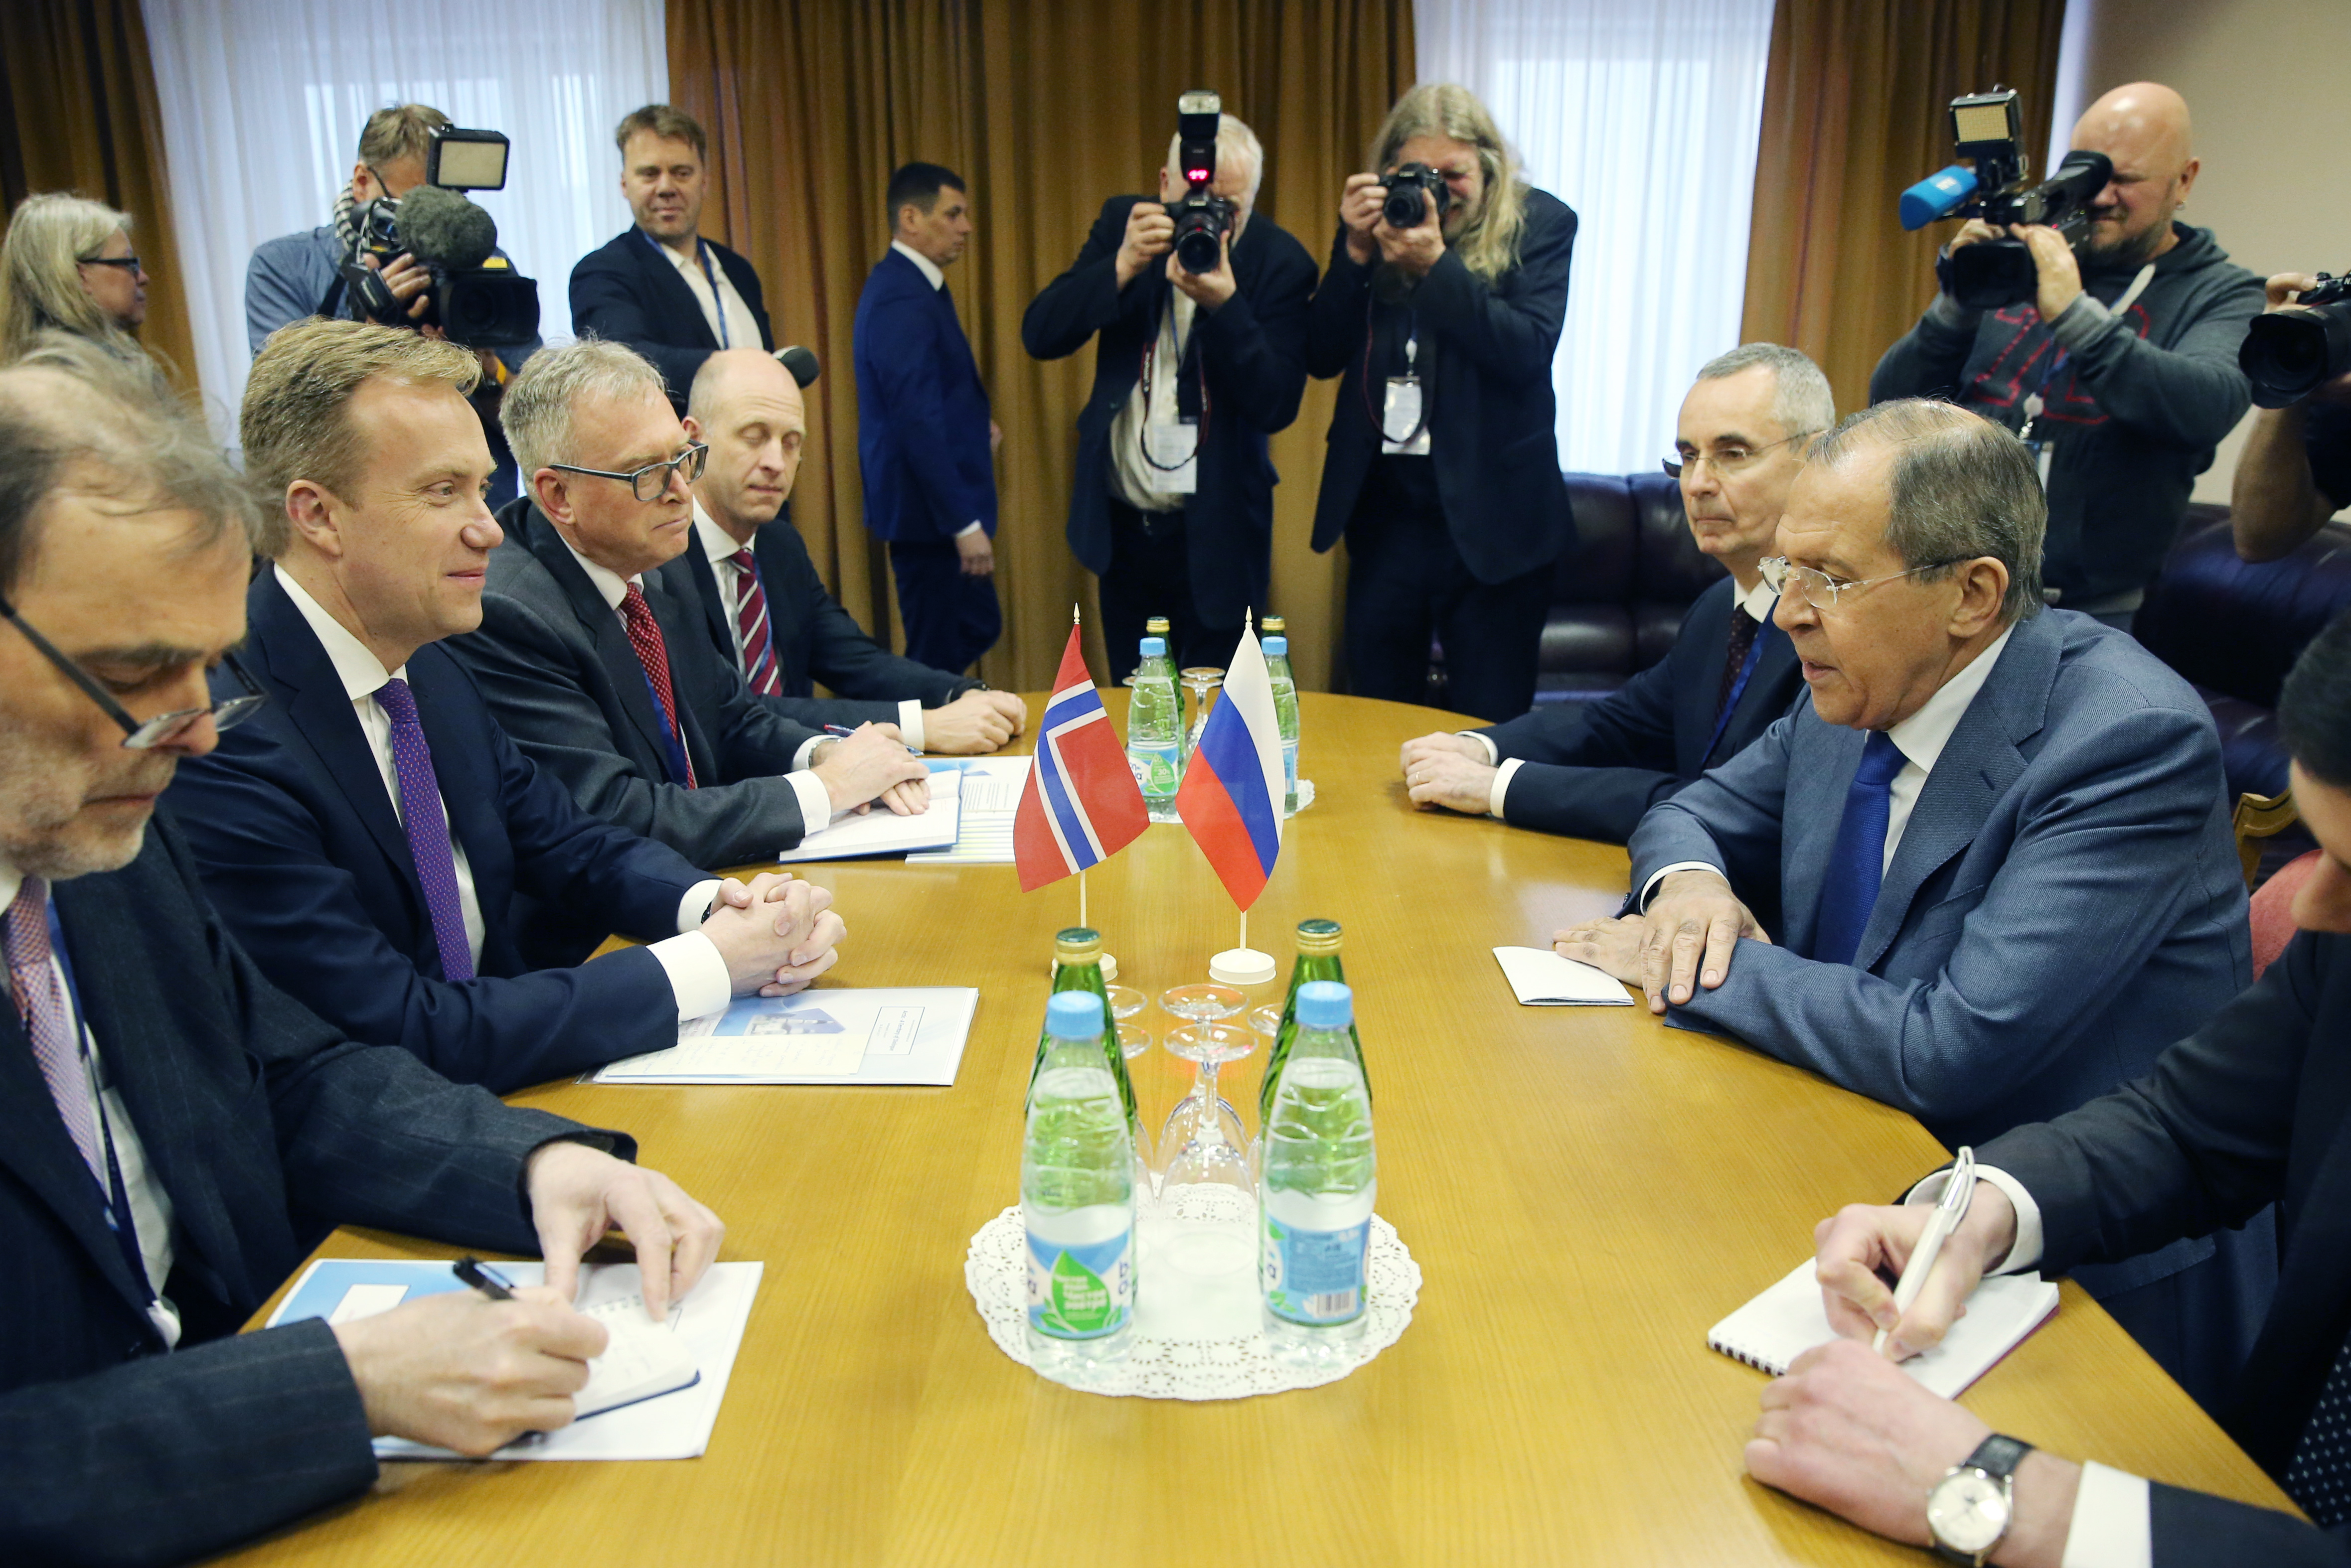 Russia's Foreign Minister Sergei Lavrov (right) and Norway's Foreign Minister Børge Brende (send from left) meet on the sidelines of the 2017 Arctic: Territory of Dialogue International Arctic Forum at the Lomonosov Northern (Arctic) Federal University in Arkhangelsk, Russia, March 29, 2017. (Peter Kovalev / TASS Host Photo Agency via International Arctic Forum)